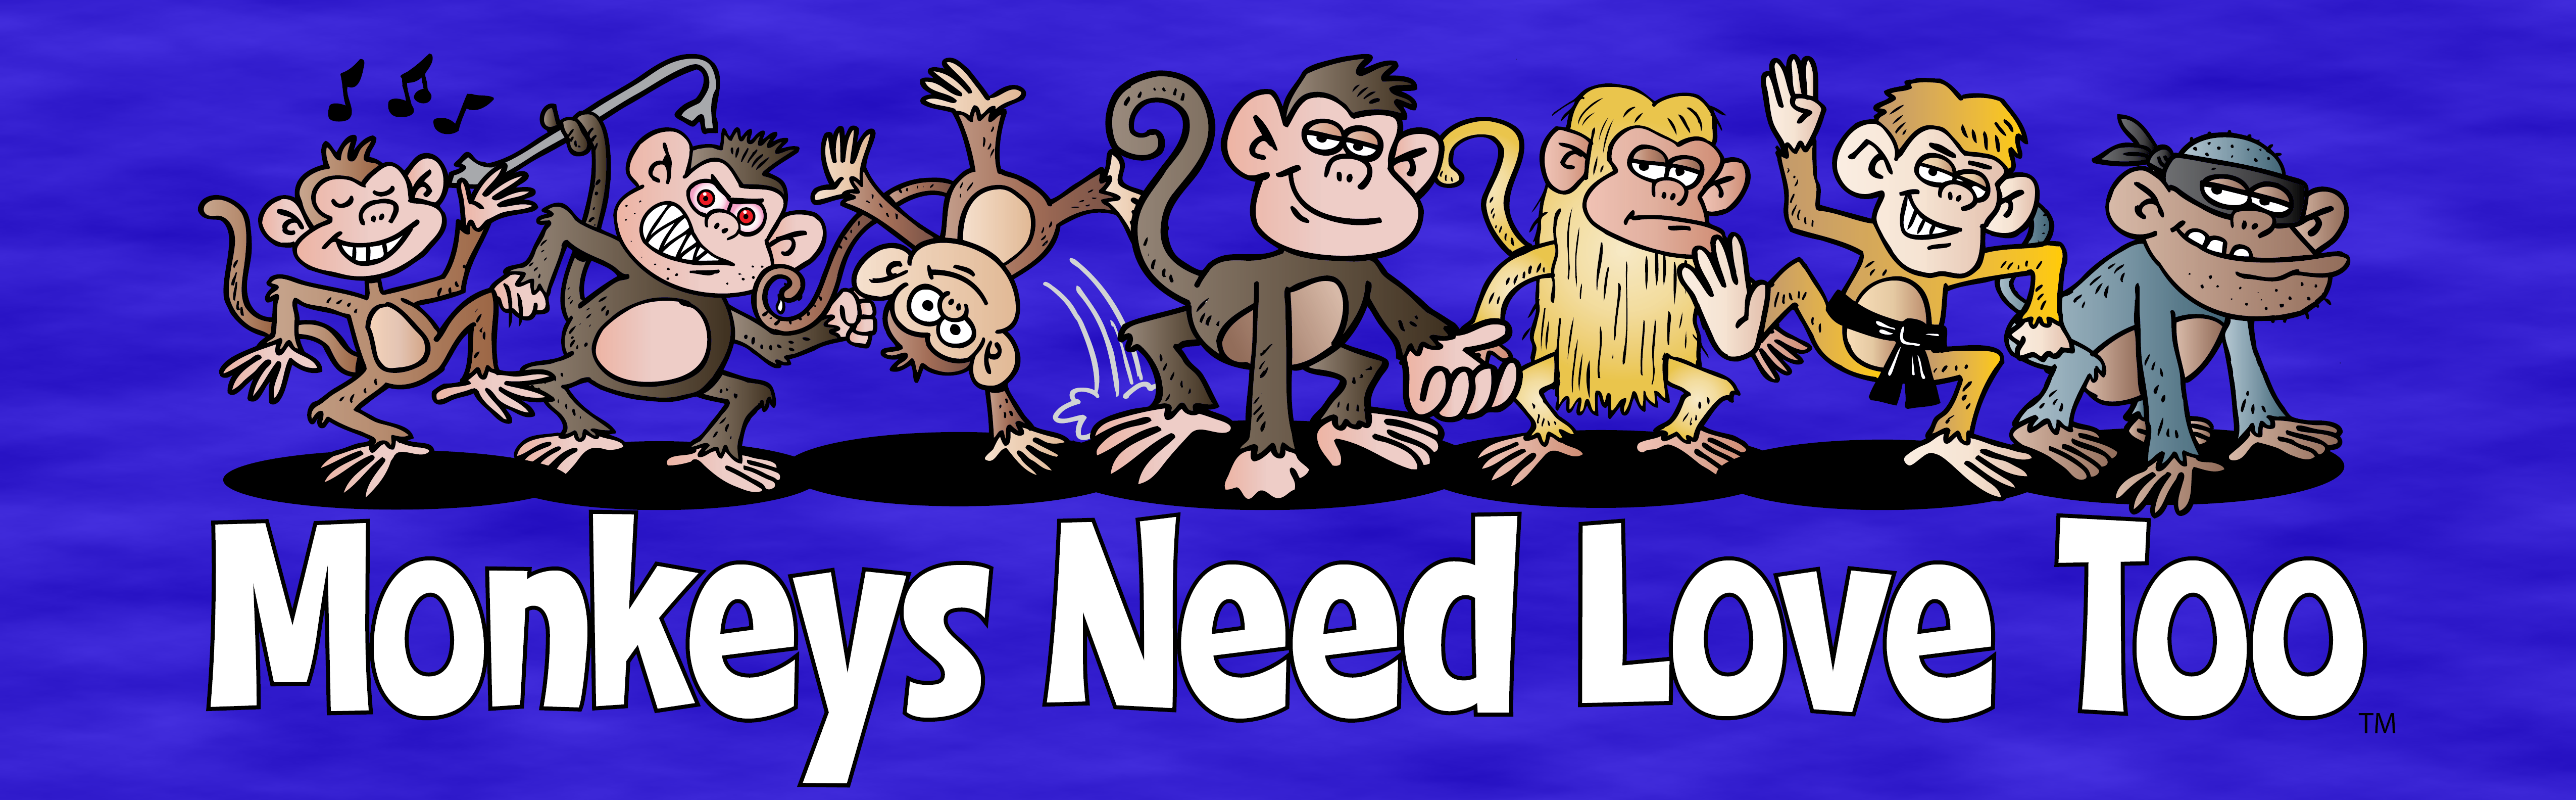 Monkeys Need Love Too homepage